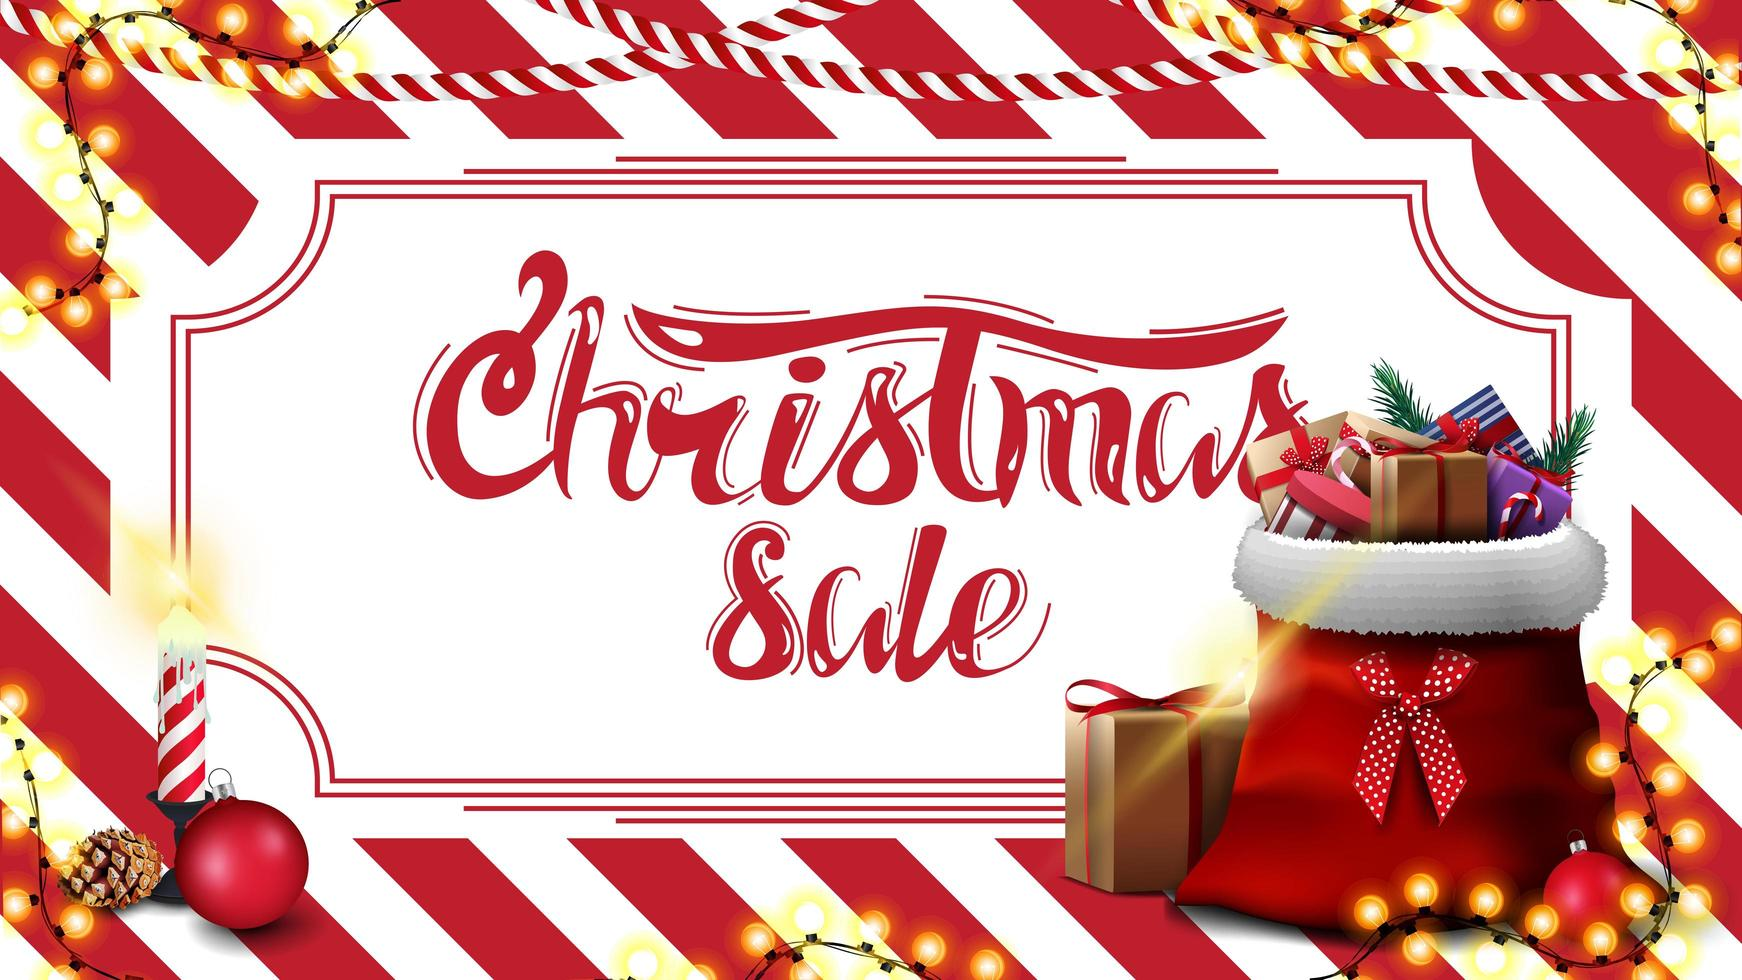 Christmas sale, discount banner with red and white striped texture on the background and Santa Claus bag with presents vector